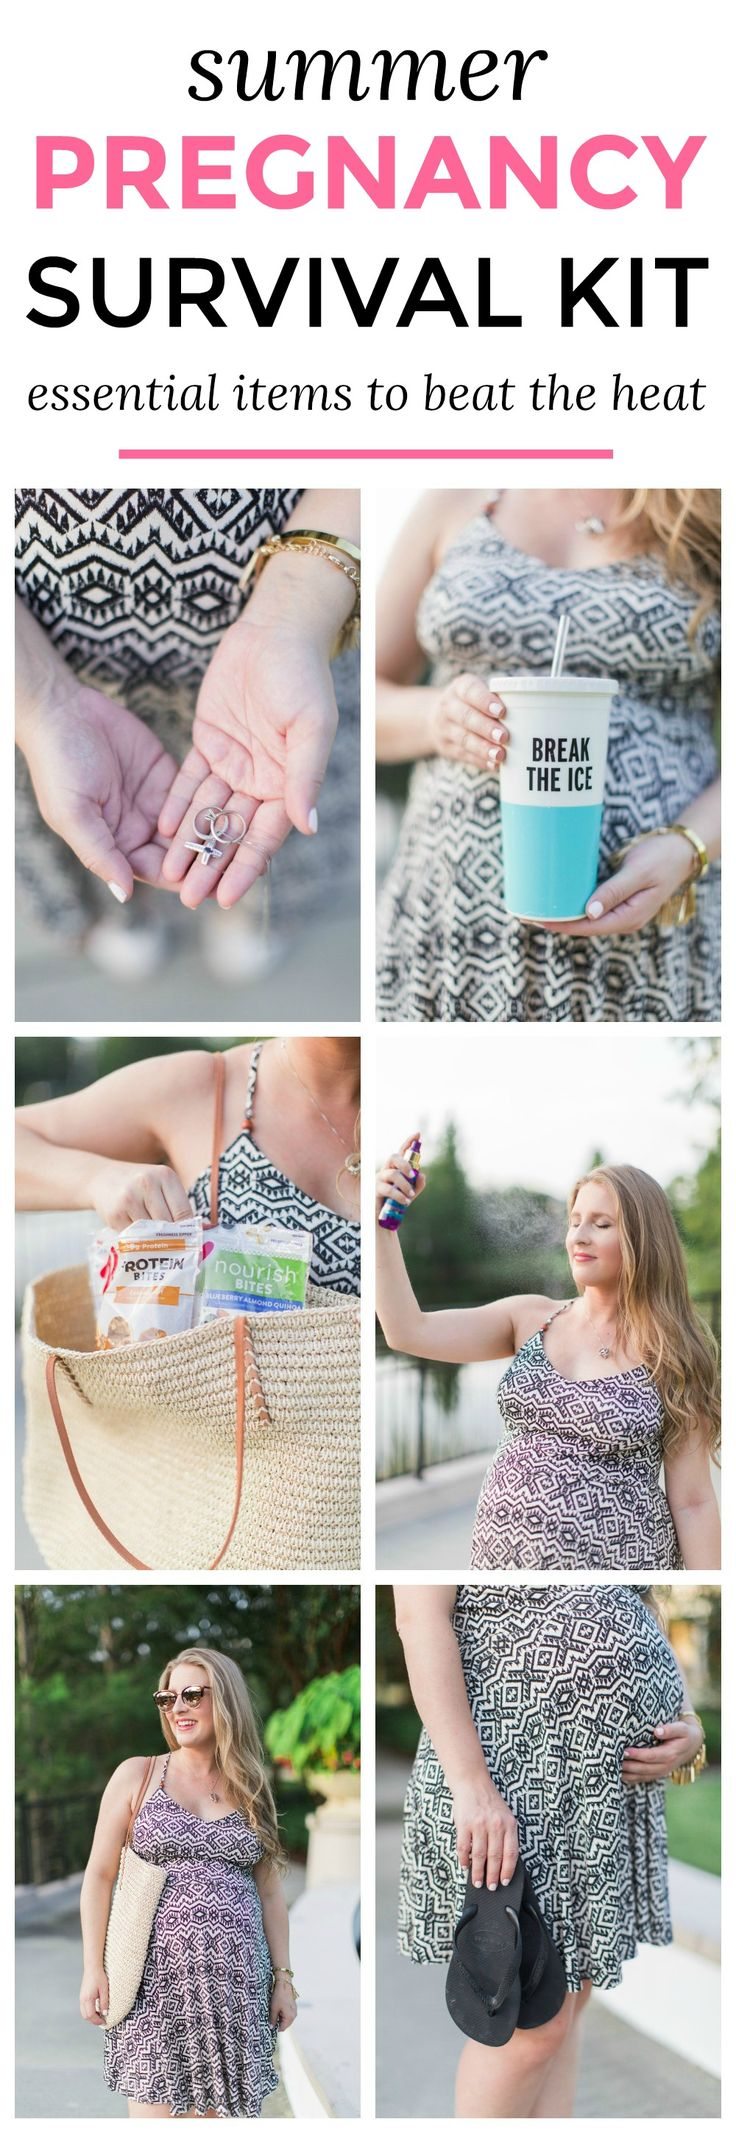 Summer Pregnancy Survival Kit – The summer pregnancy essentials that will help you survive the heat with Orlando, Florida lifestyle blogger Ashley Brooke Nicholas #OwnIt sponsored by Special K | maternity fashion, maternity outfit ideas, maternity tips, pregnancy tips